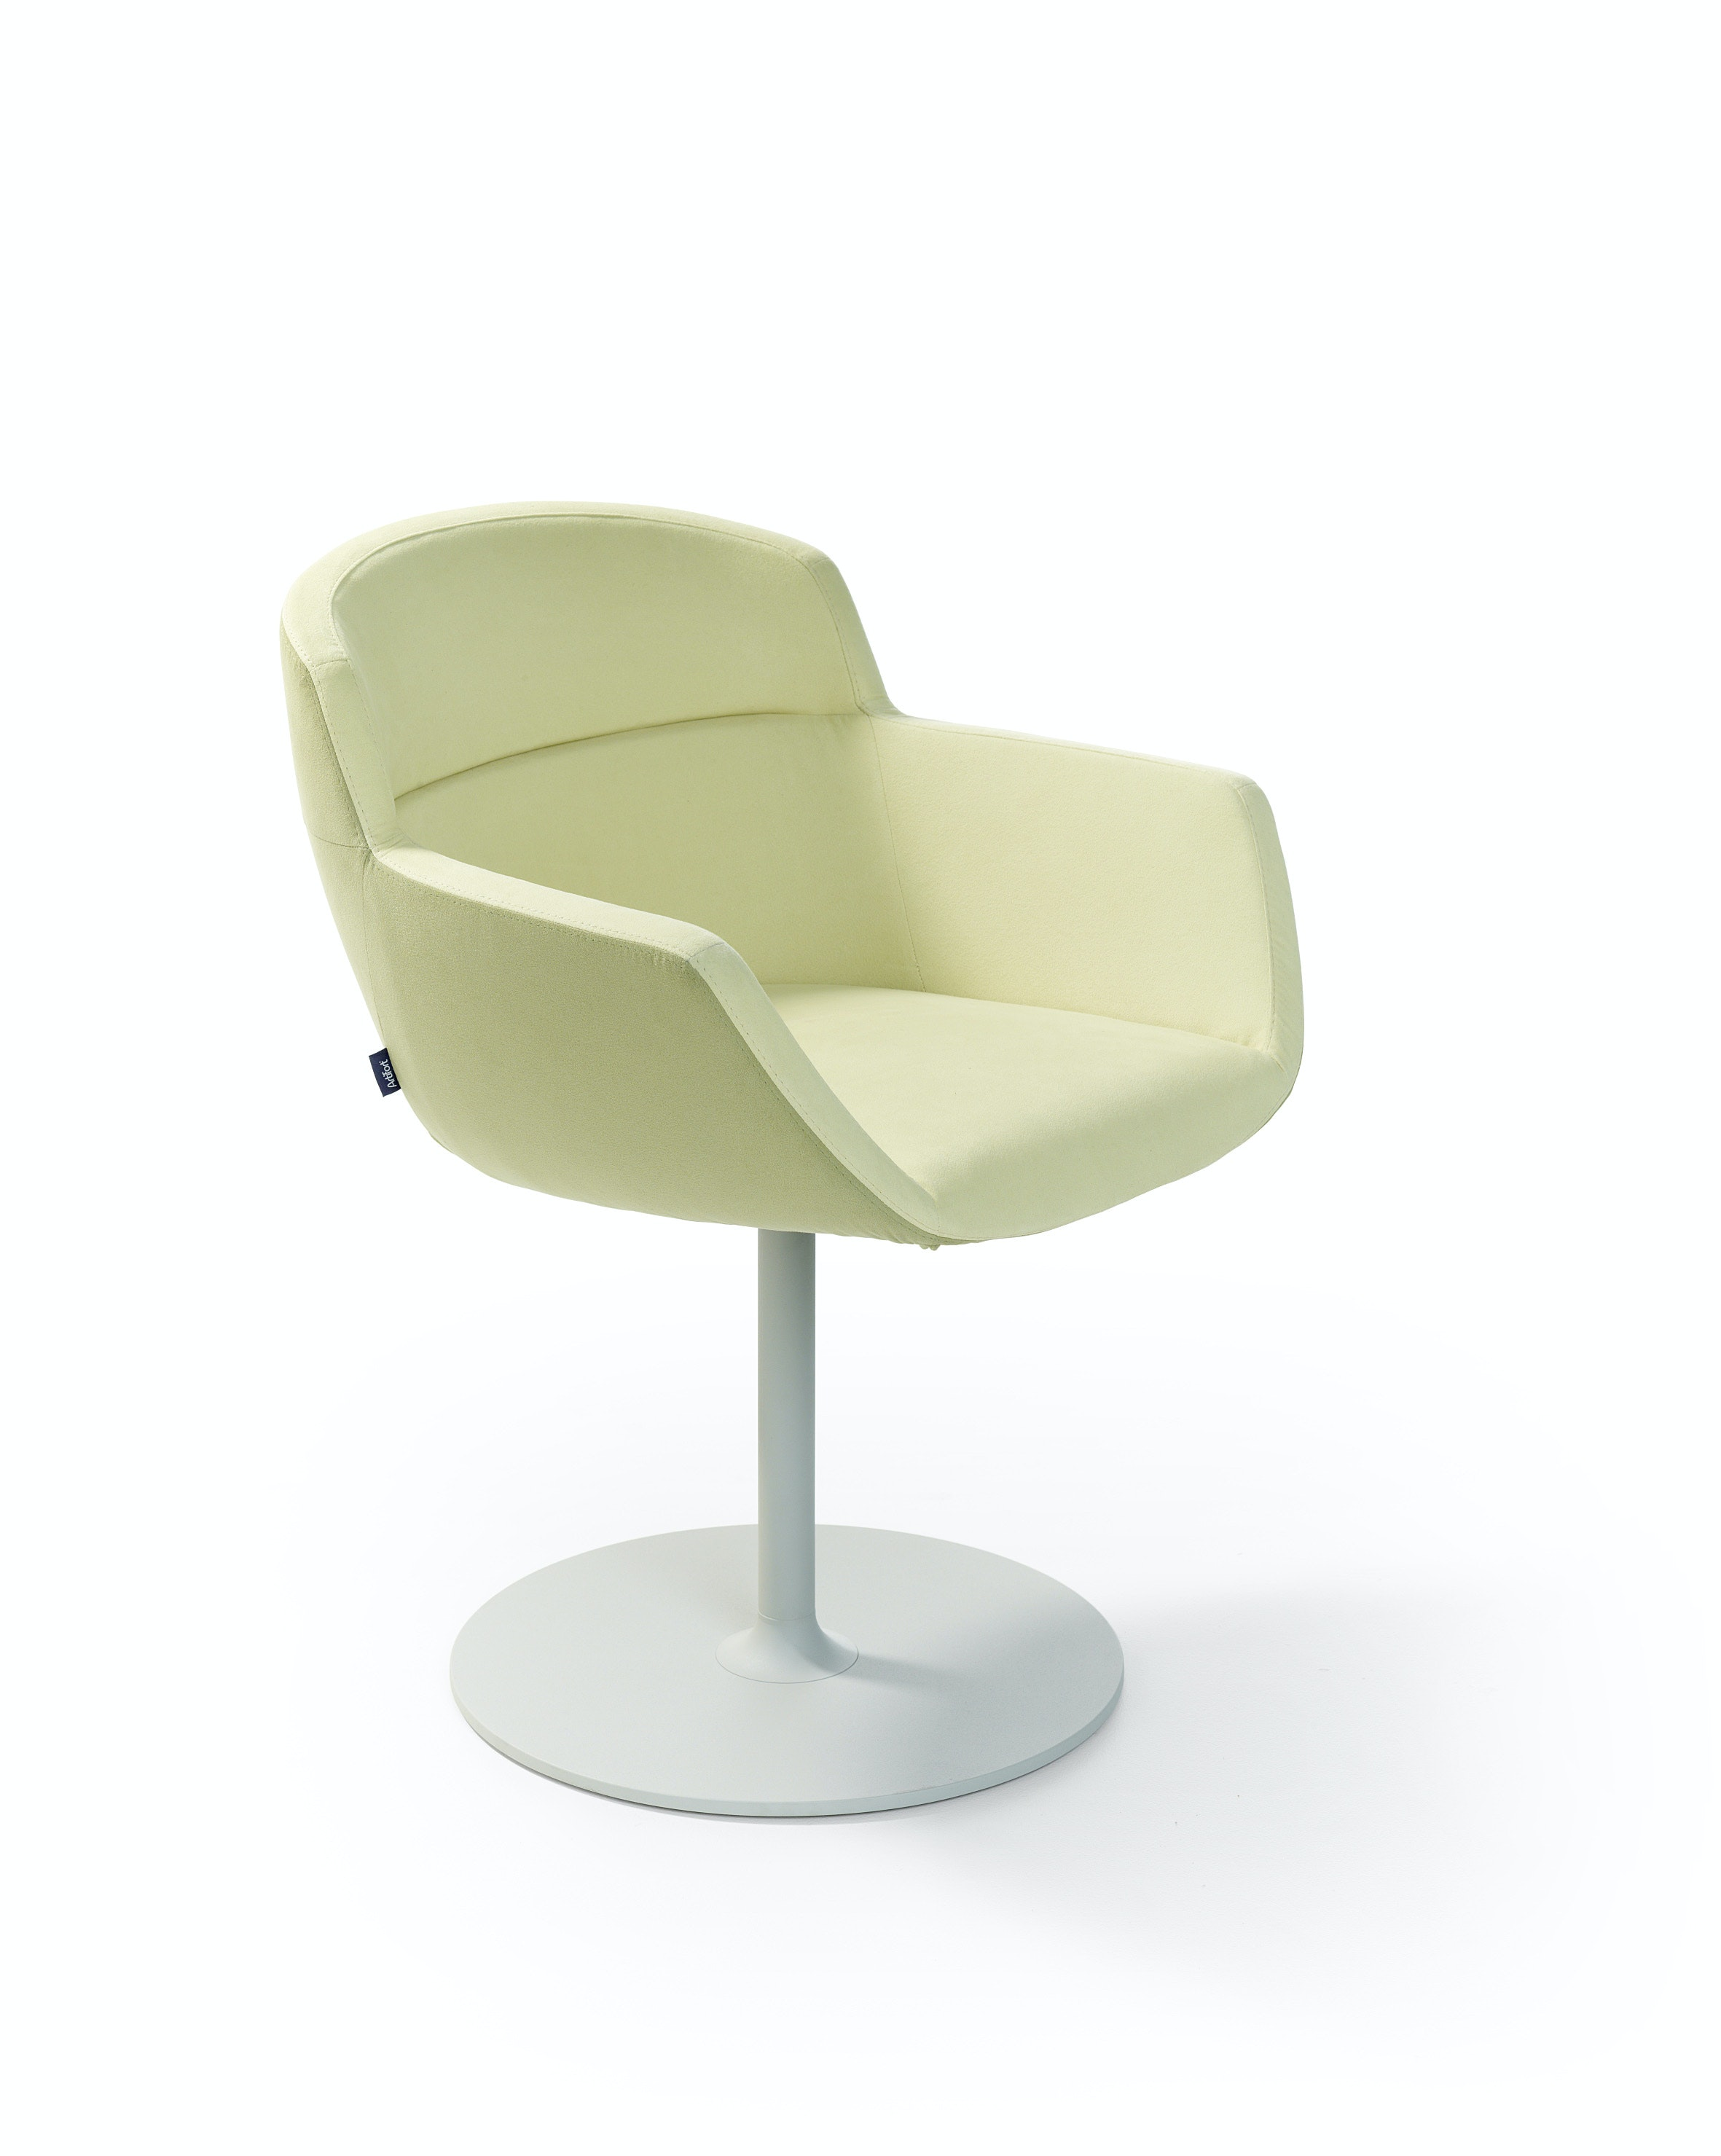 Mood Relax Chair4